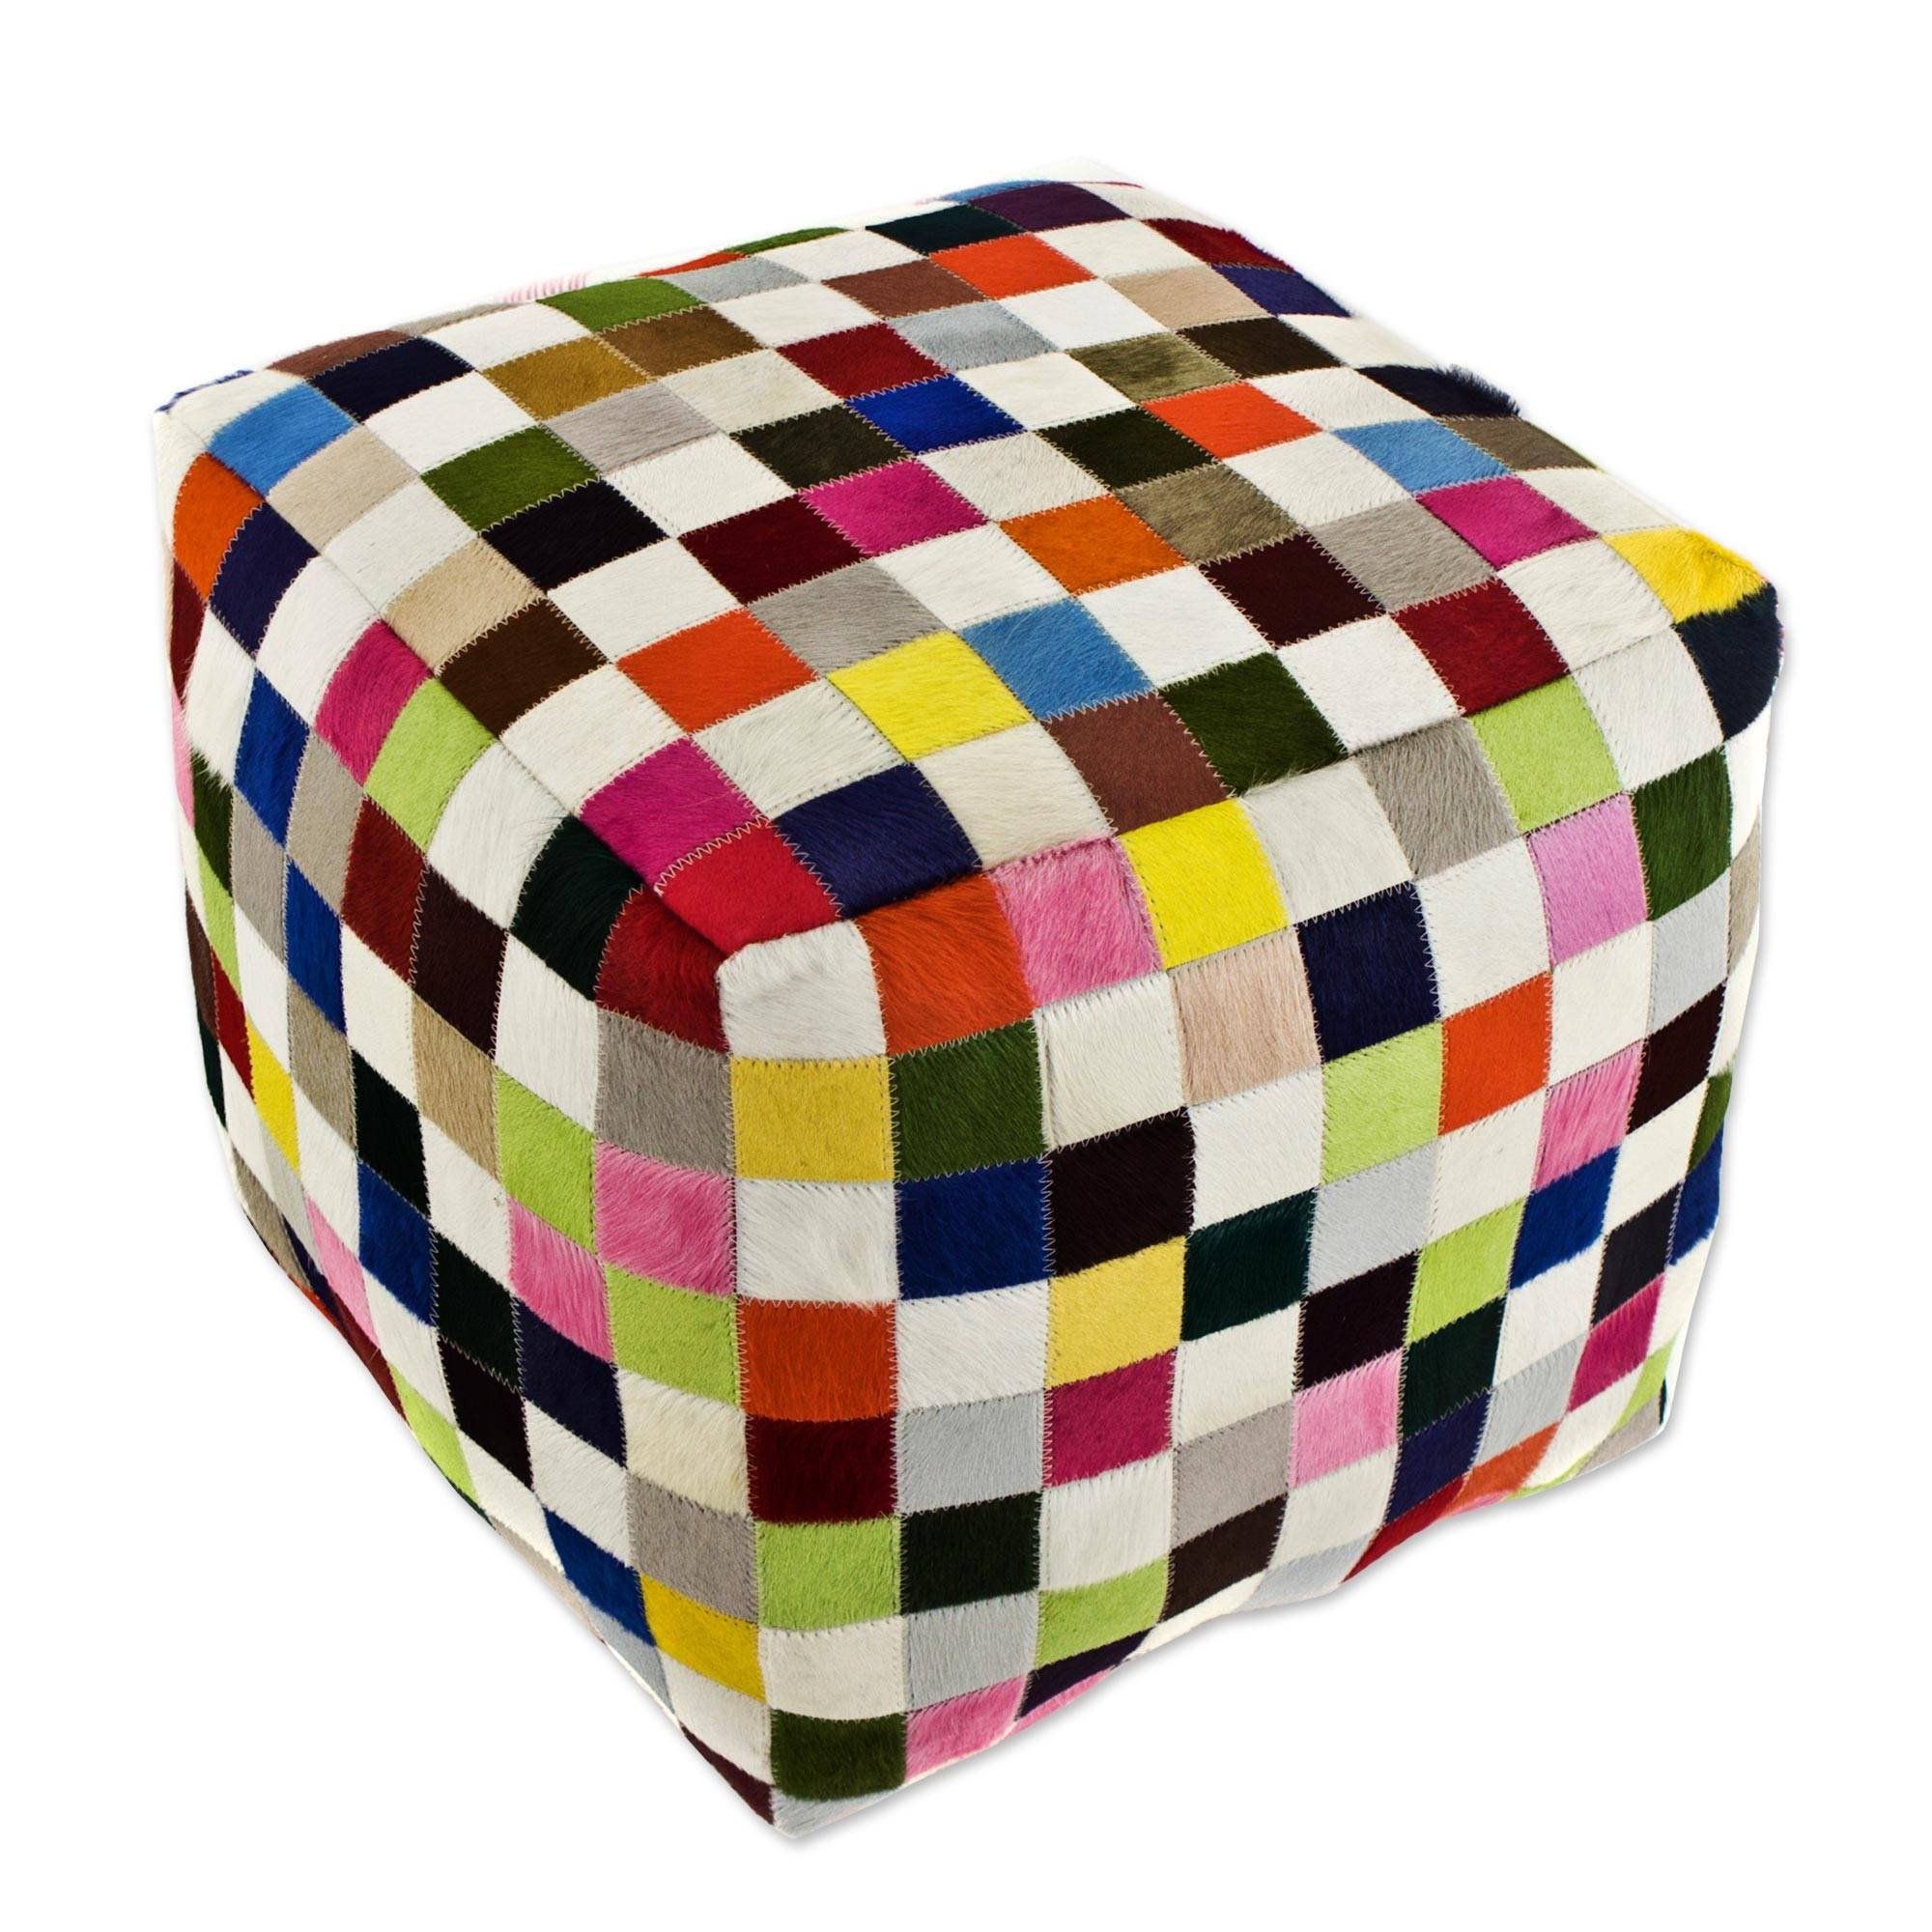 NOVICA Bohemian Leather Ottoman Covers , Multicolor, 'Carnaval Chess Cube'